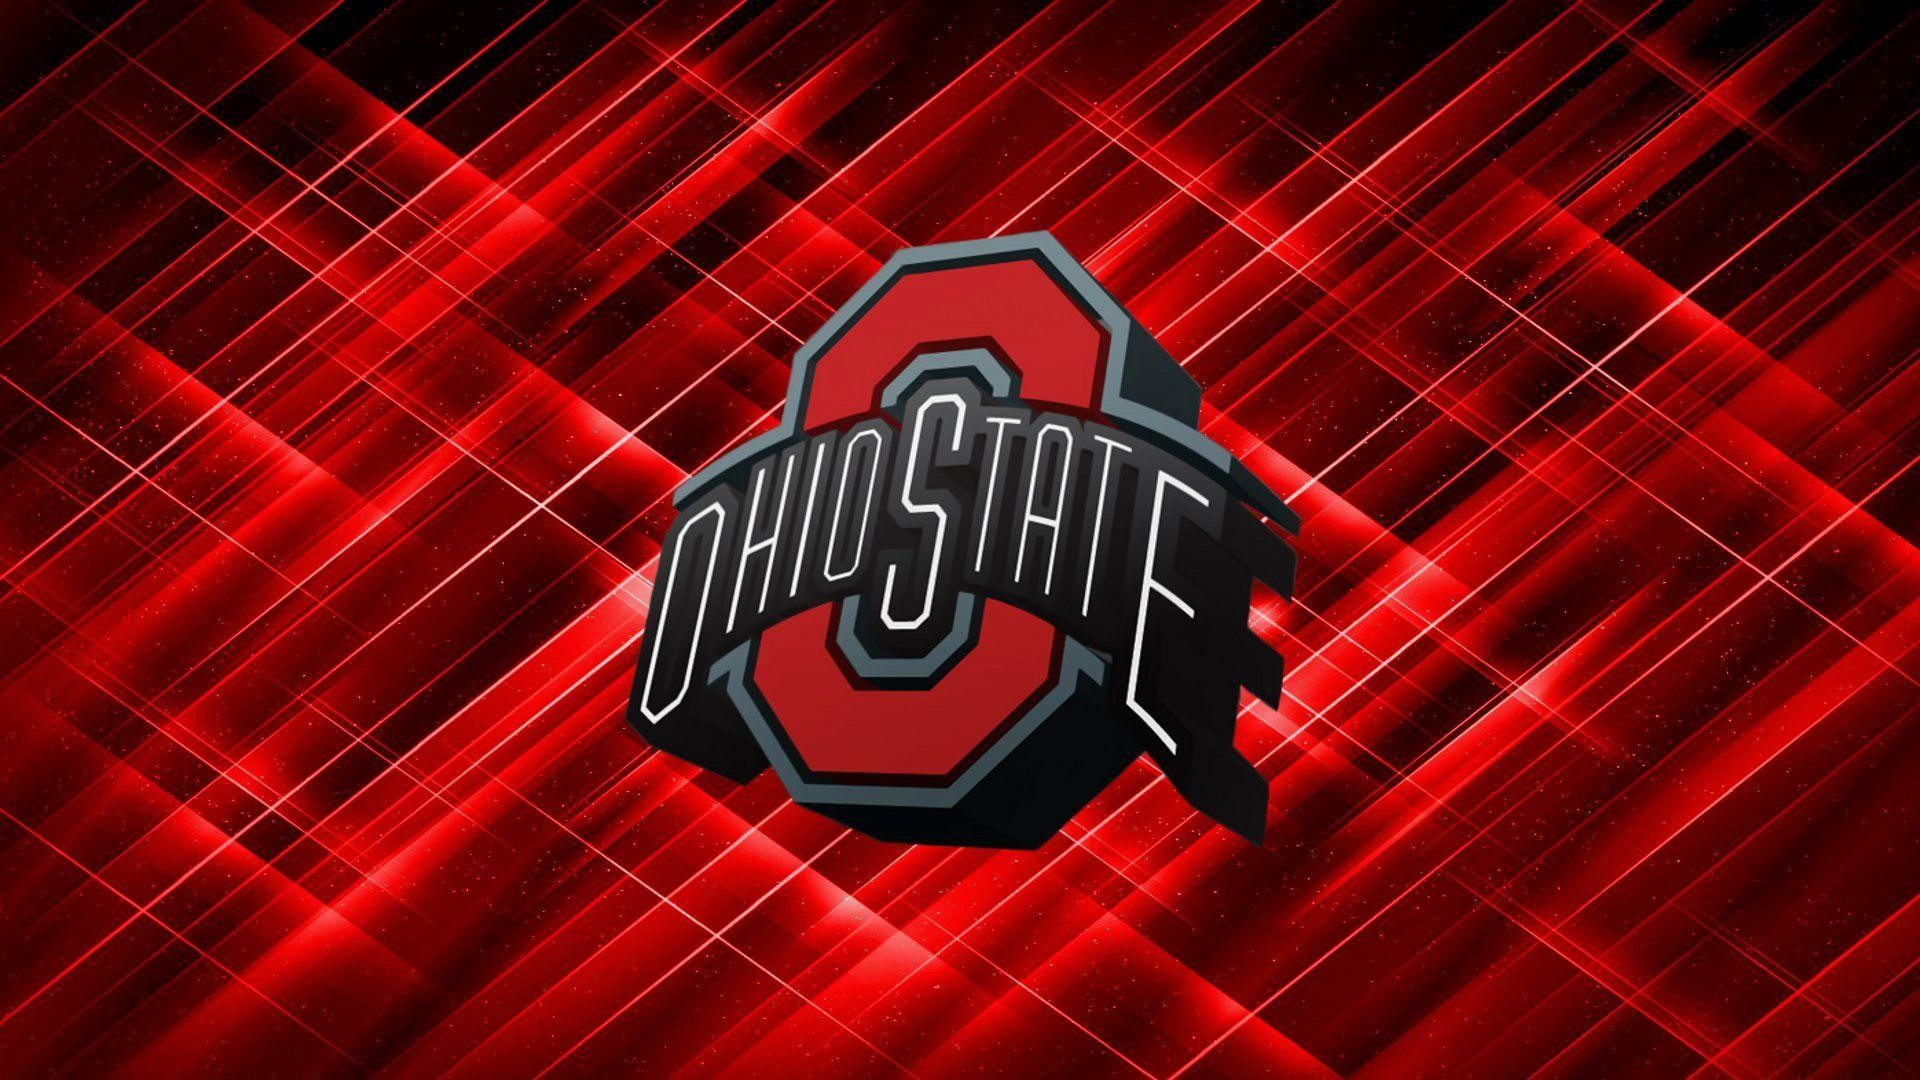 Ohio-State-Buckeyes-Football-Backgrounds-Download-wallpaper-wp40010412